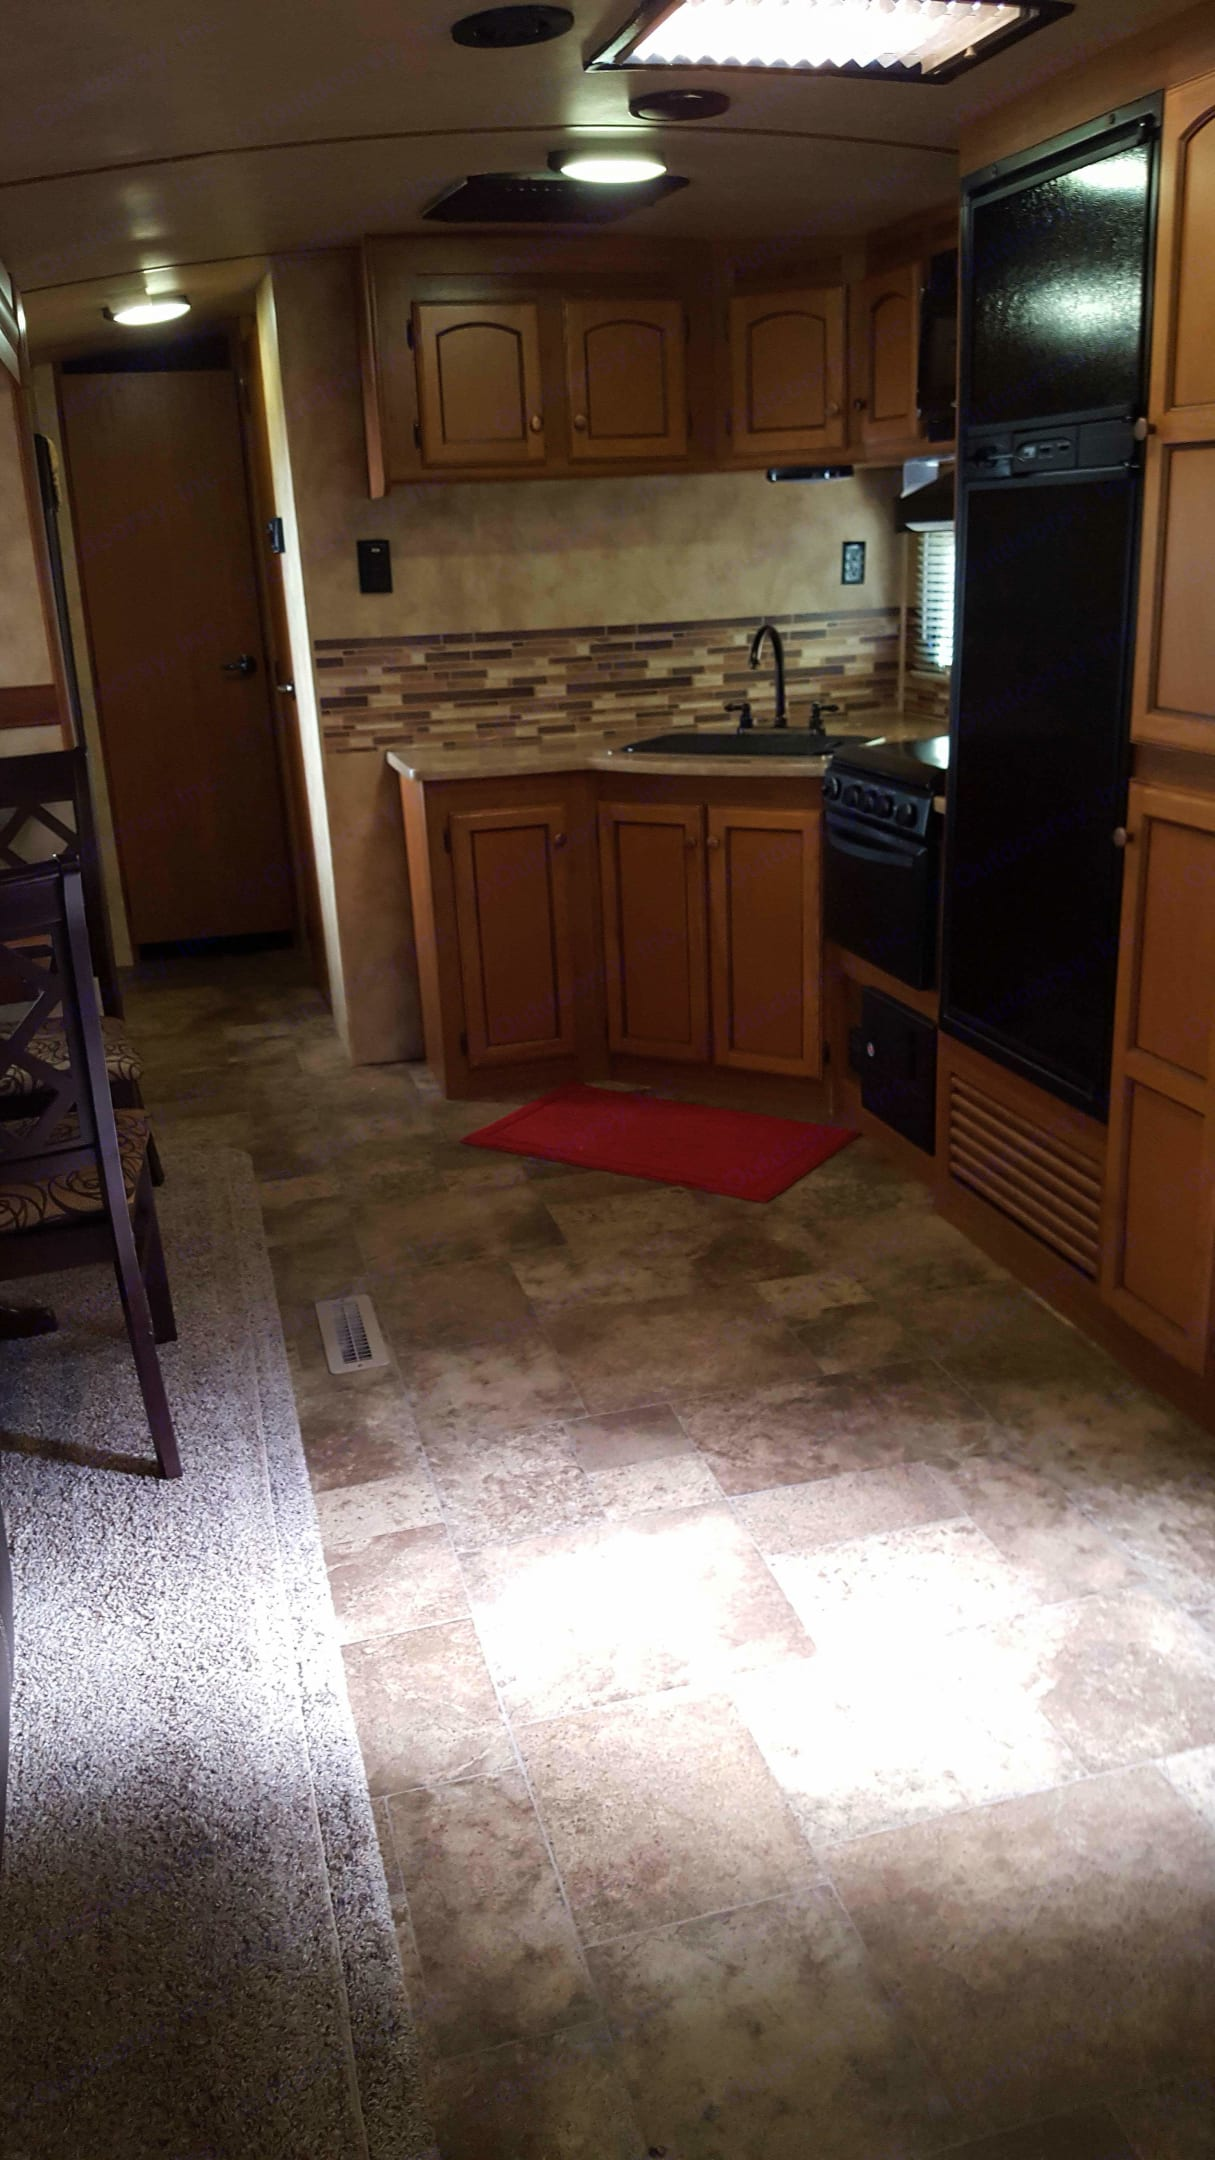 Three burner stove, oven, microwave, refrigerator and freezer with loads of cabinets for storage!. Crossroads Sunset Trails 290RL Super Lite 2015